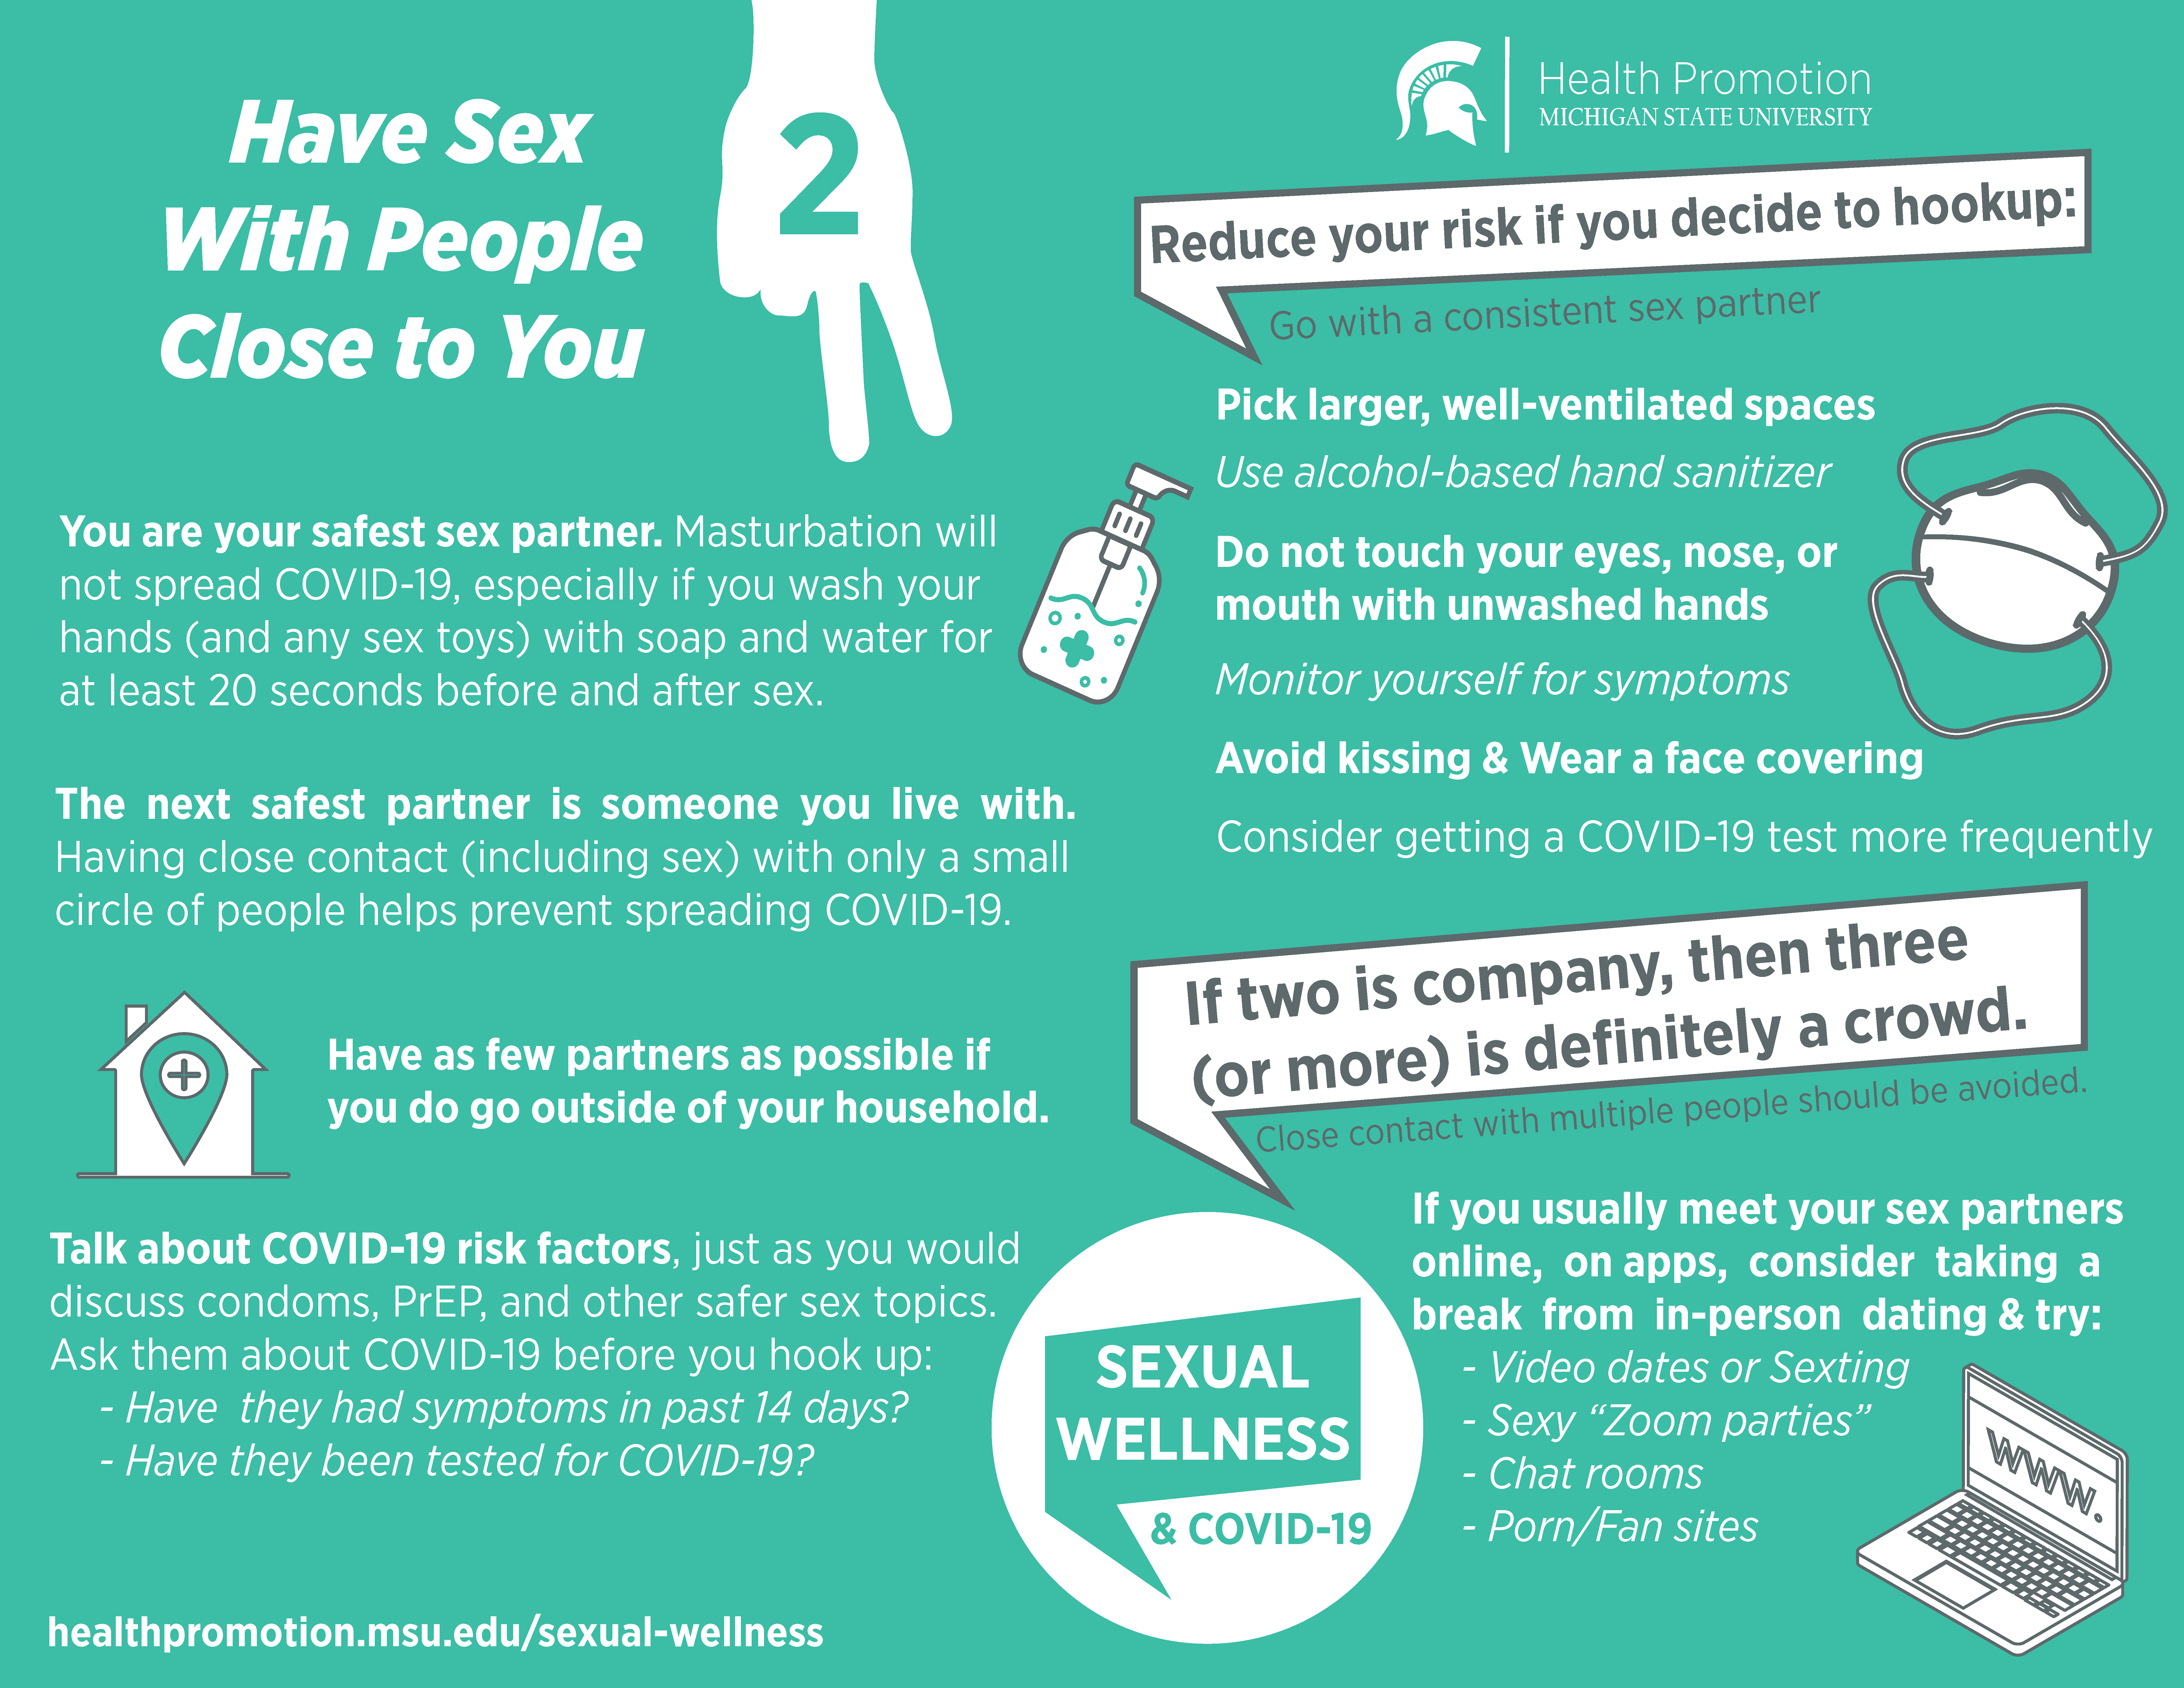 Have sex with people you know